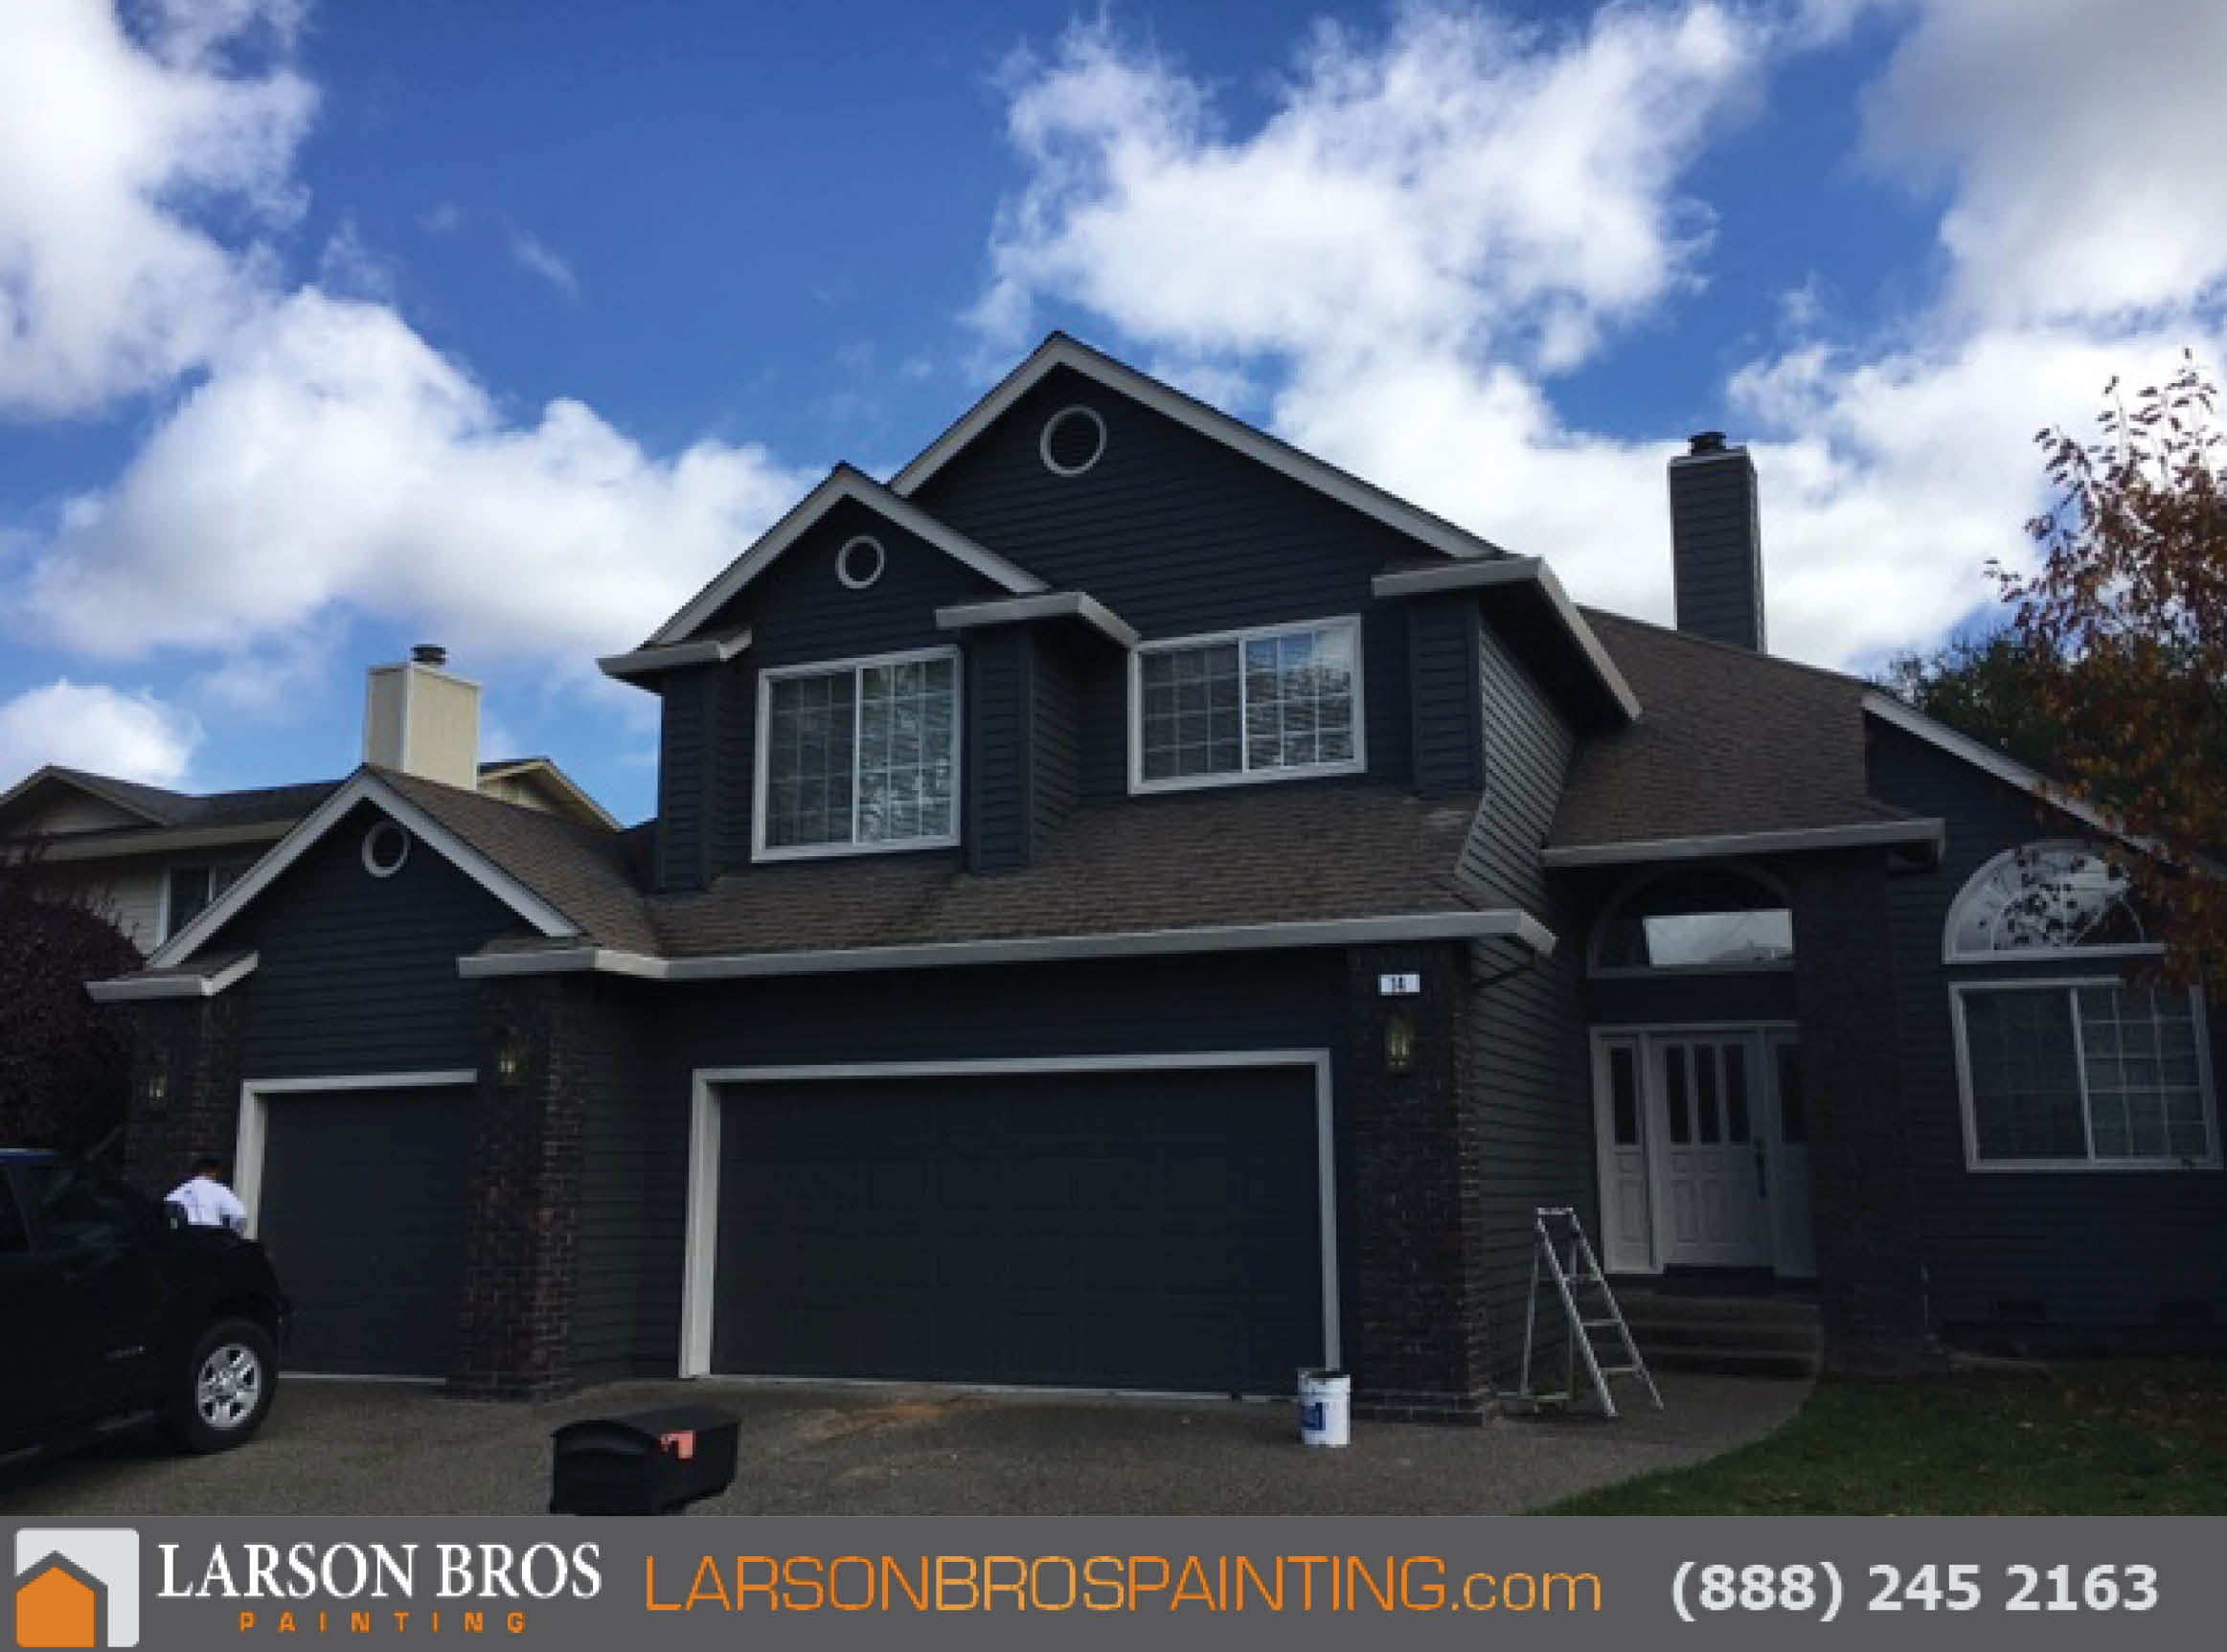 Exterior archives larson bros painting - How to paint a 2 story house exterior ...